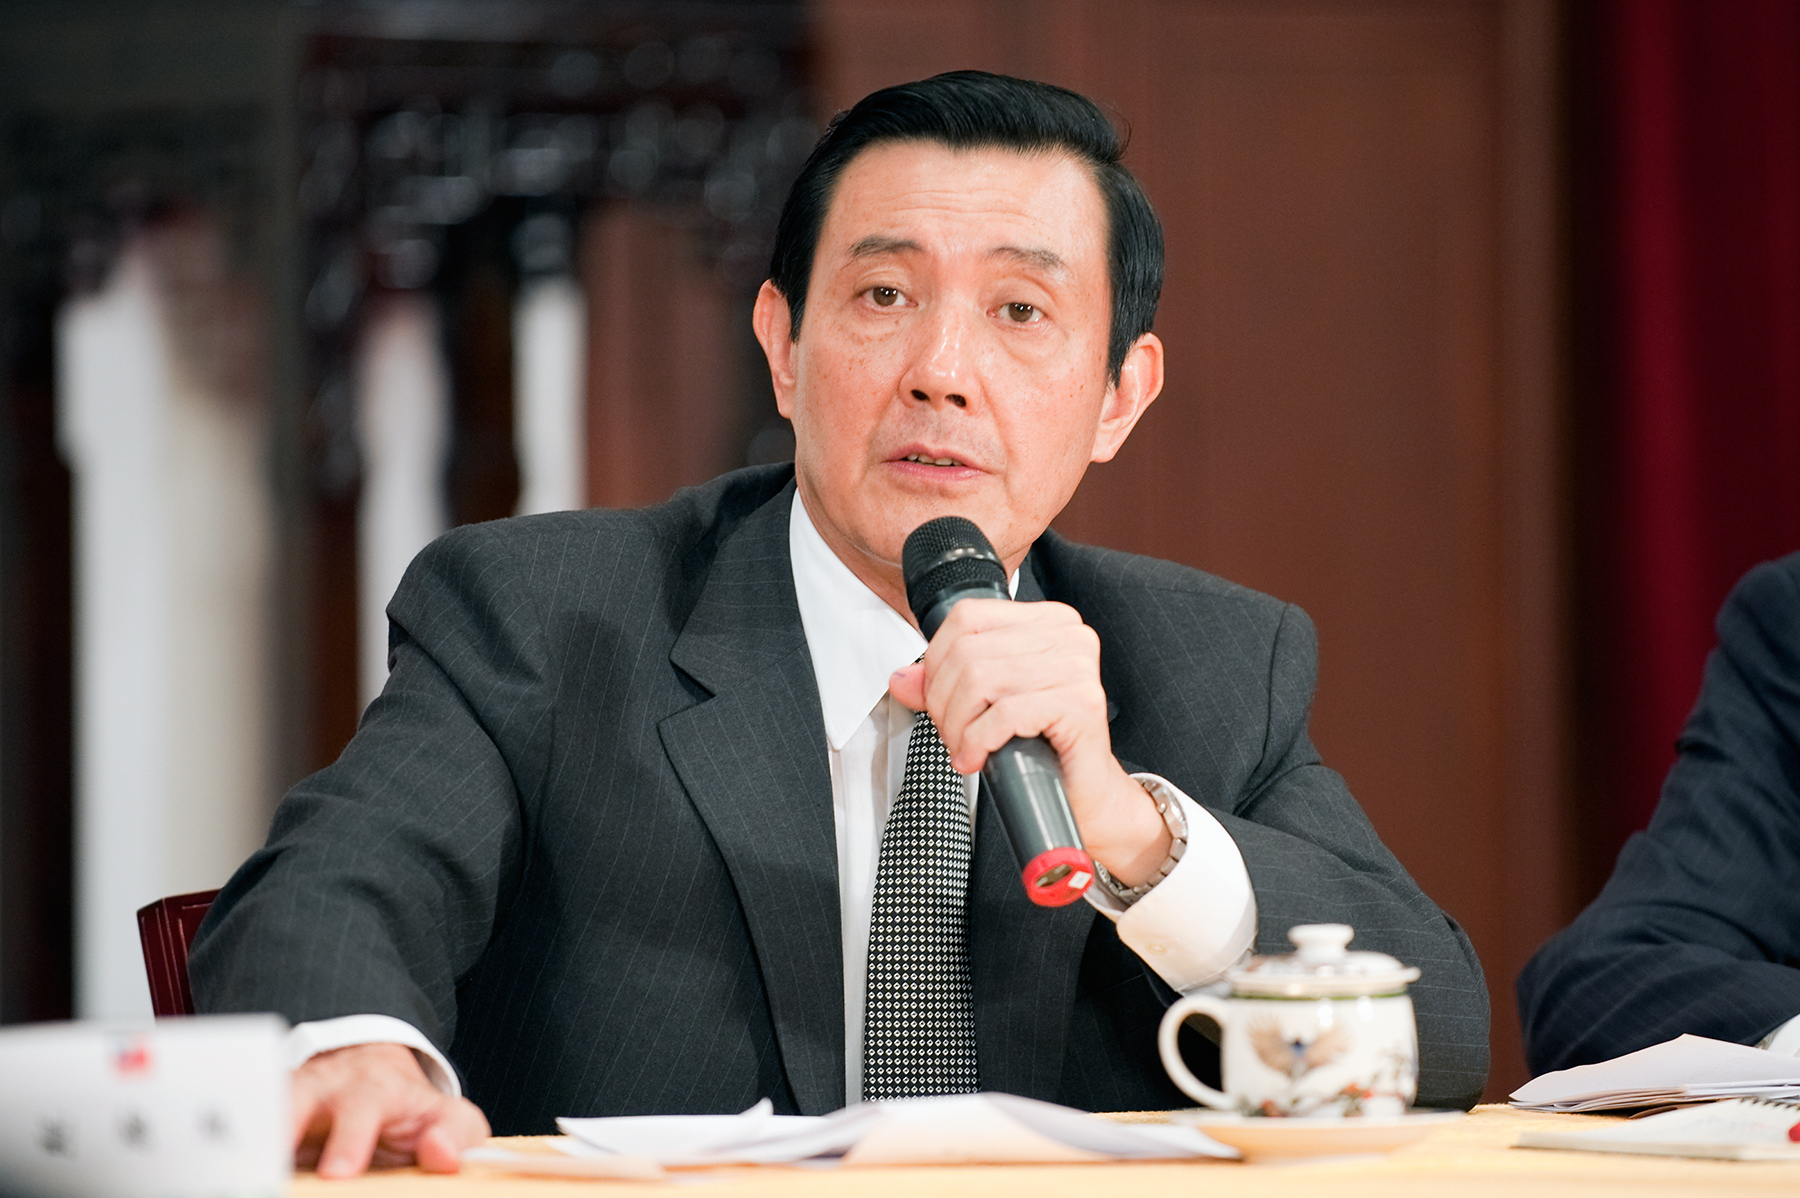 Republic Of China (Taiwan) President Ma Ying-jeou speaks in a press briefing in Taiwans Presidential Building, Taipei, Taiwan, Tuesday, August 8, 2009 addressing the issues regarding typhoon Morakot.